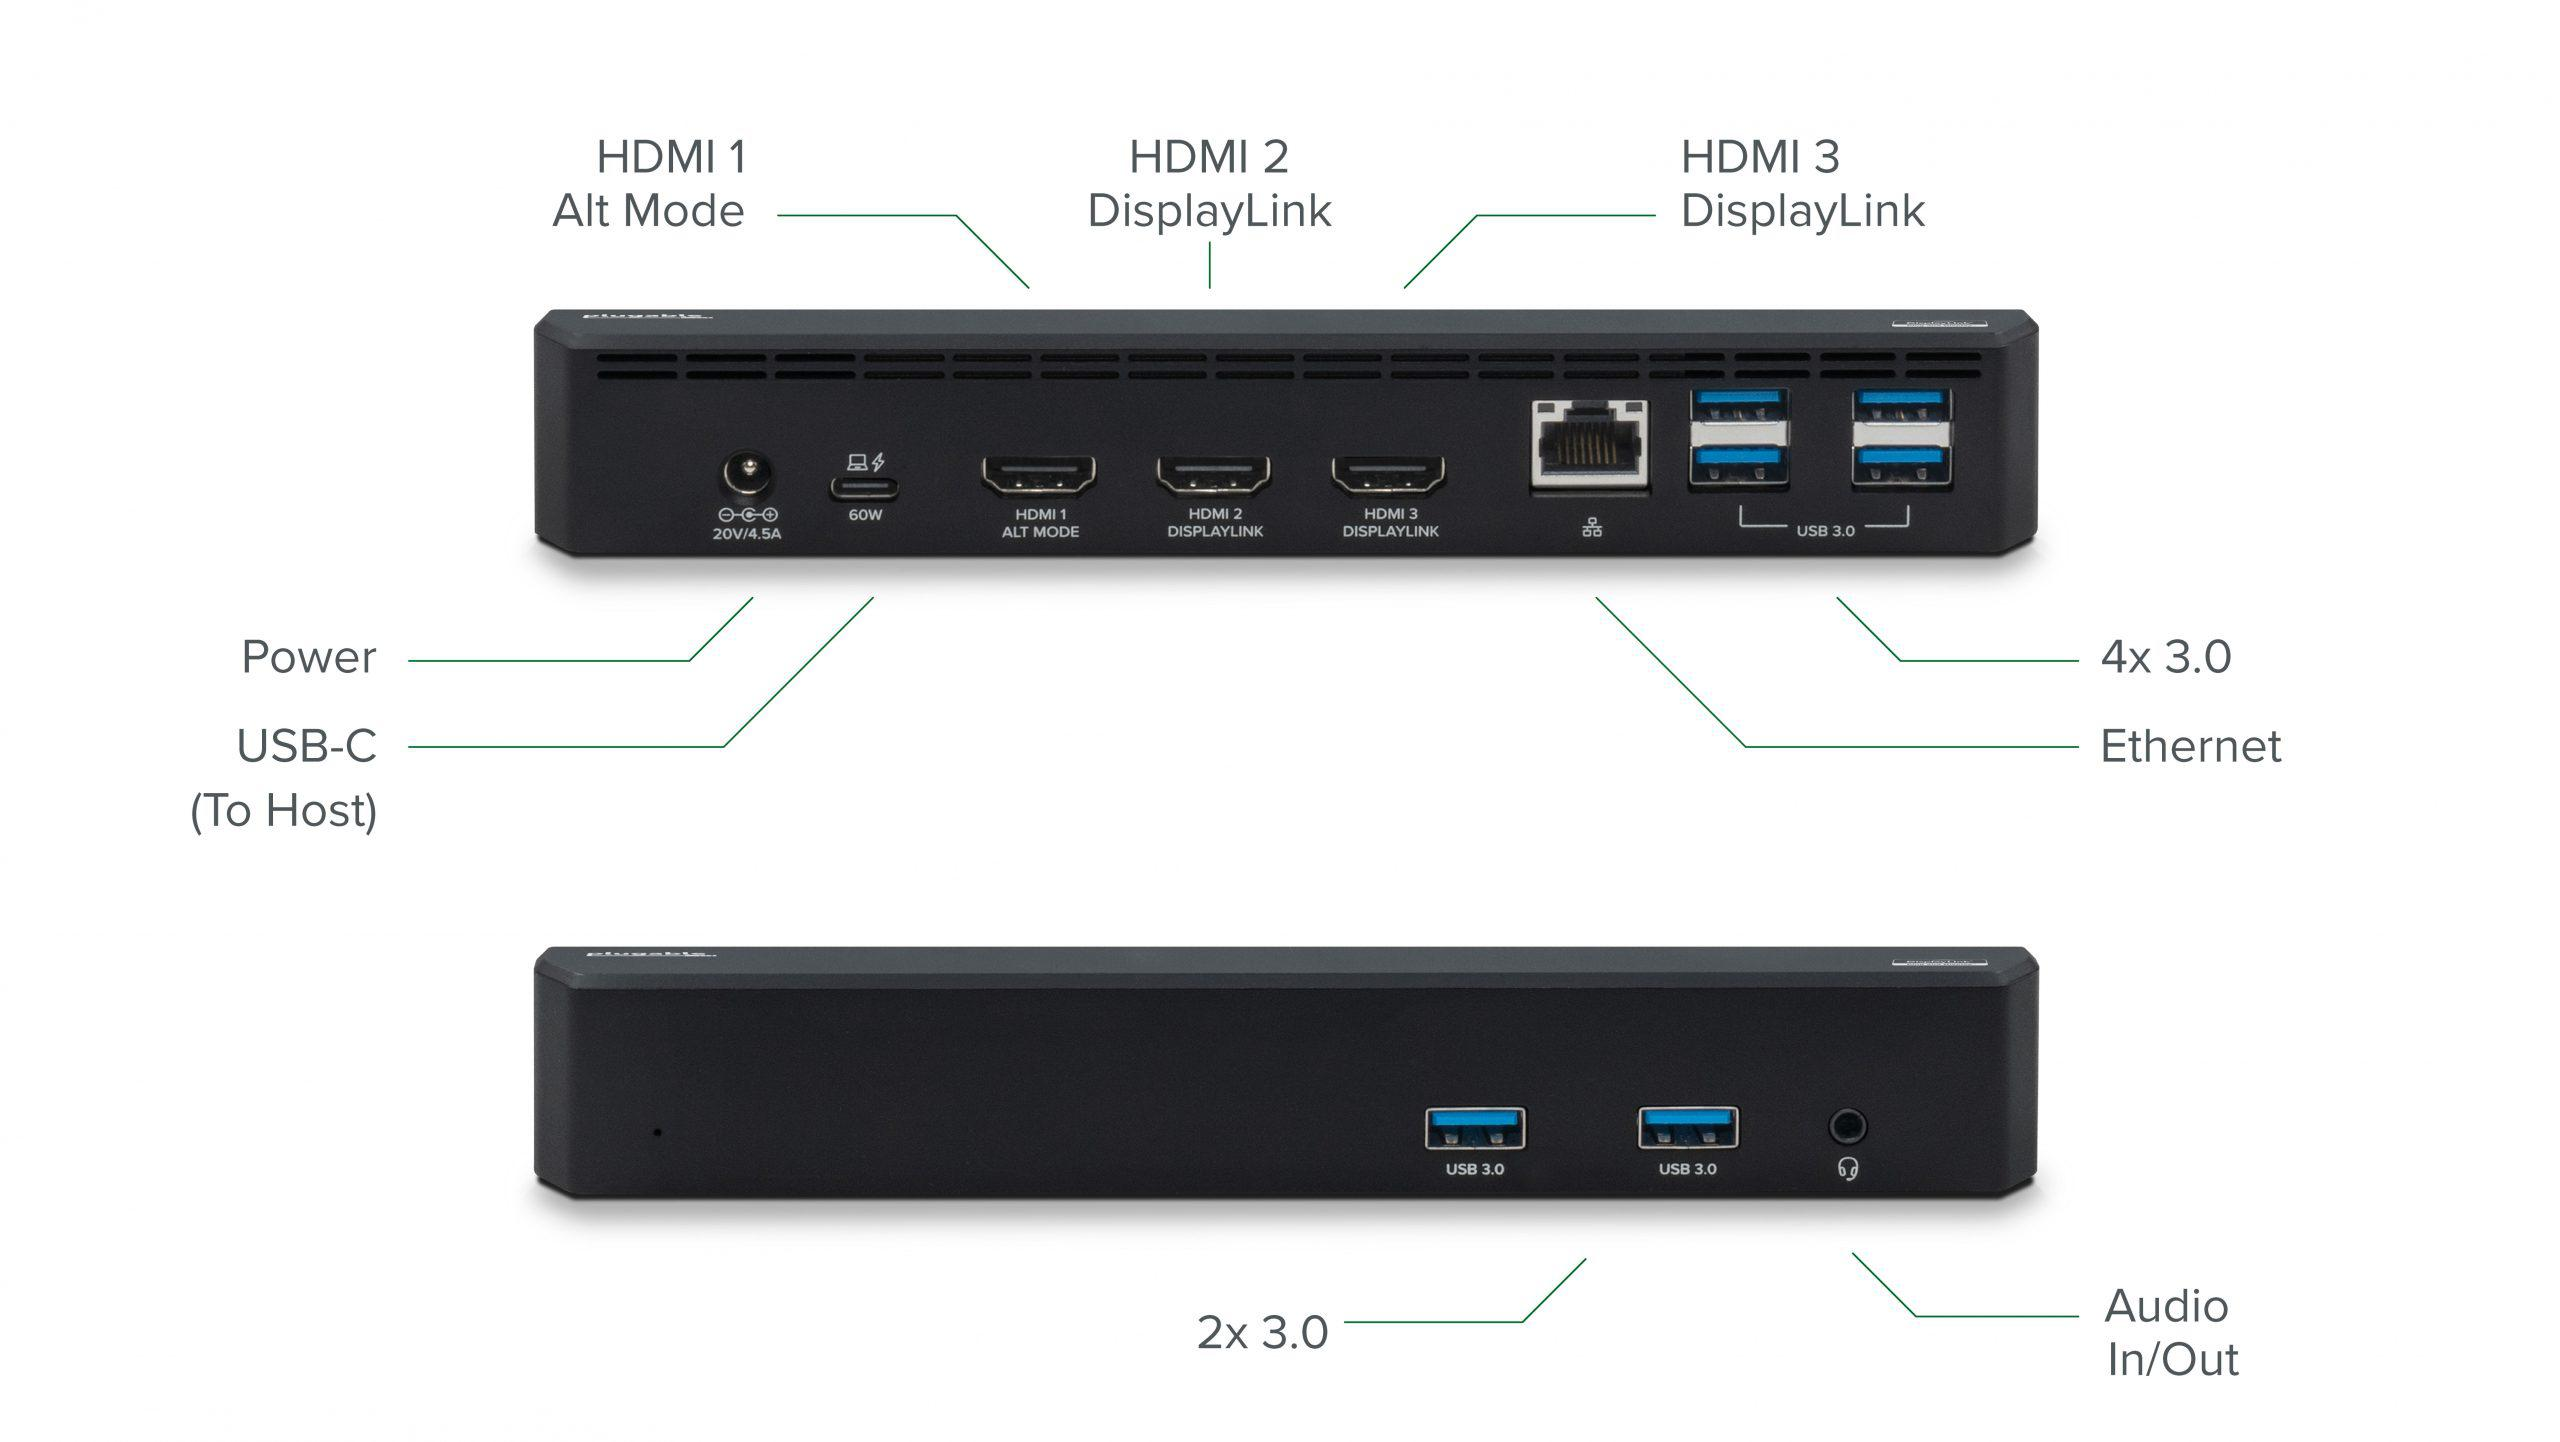 The UD-3900PDZ keeps most of its ports in the back but maintains easy access to two USB 3.0 ports and an audio jack